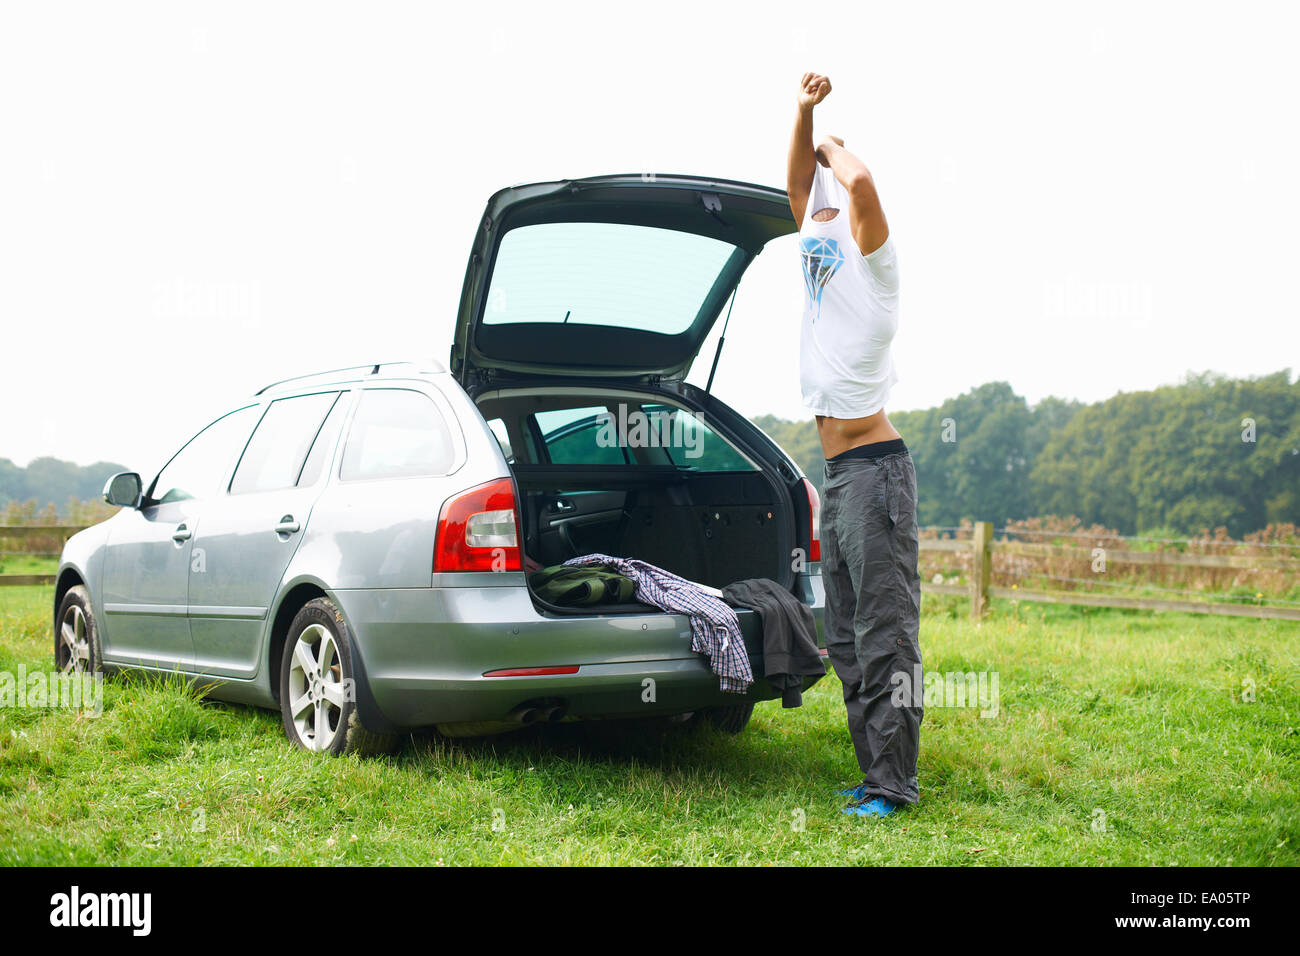 Changing clothes in a car - Man At Rear Of Car Changing Clothes